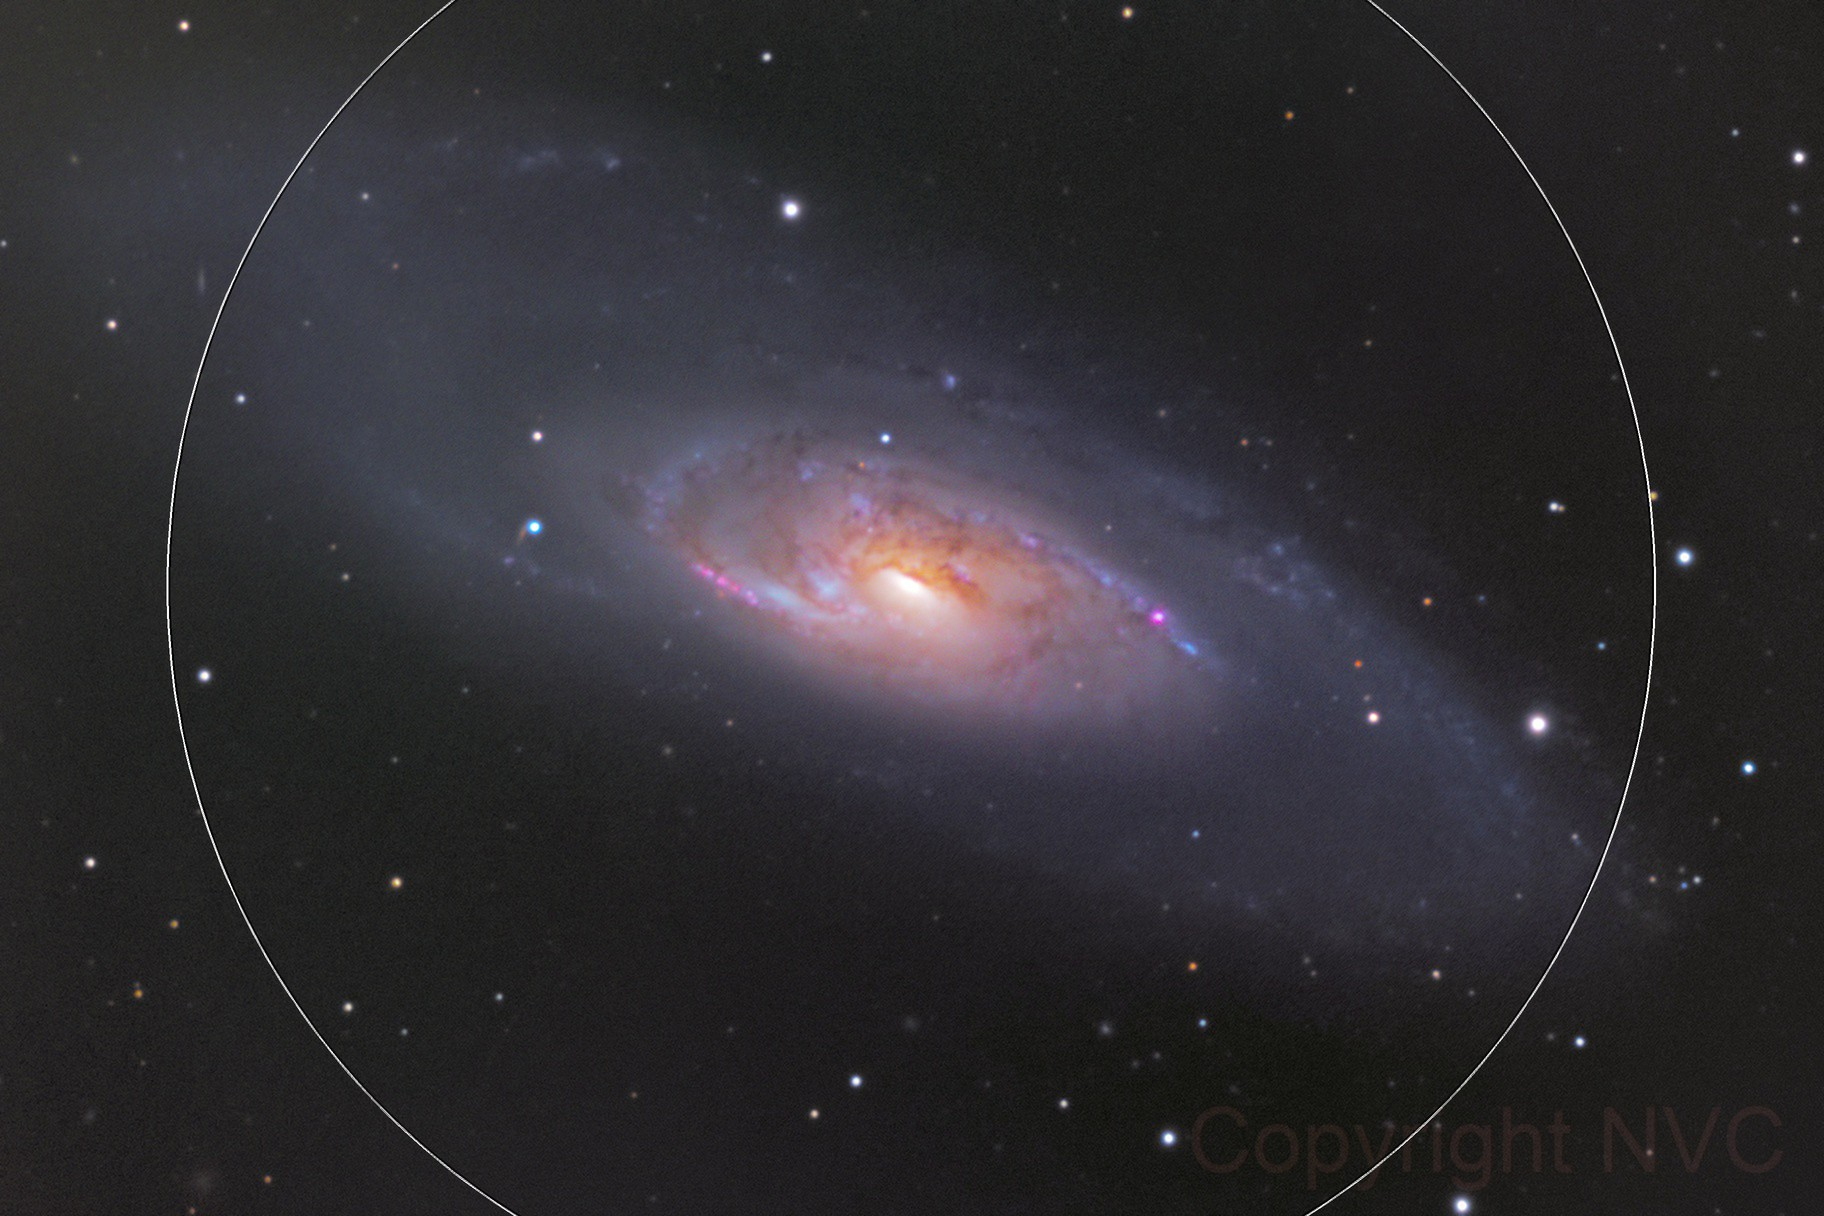 M106 Galaxy, a color image, CPH, Denmark